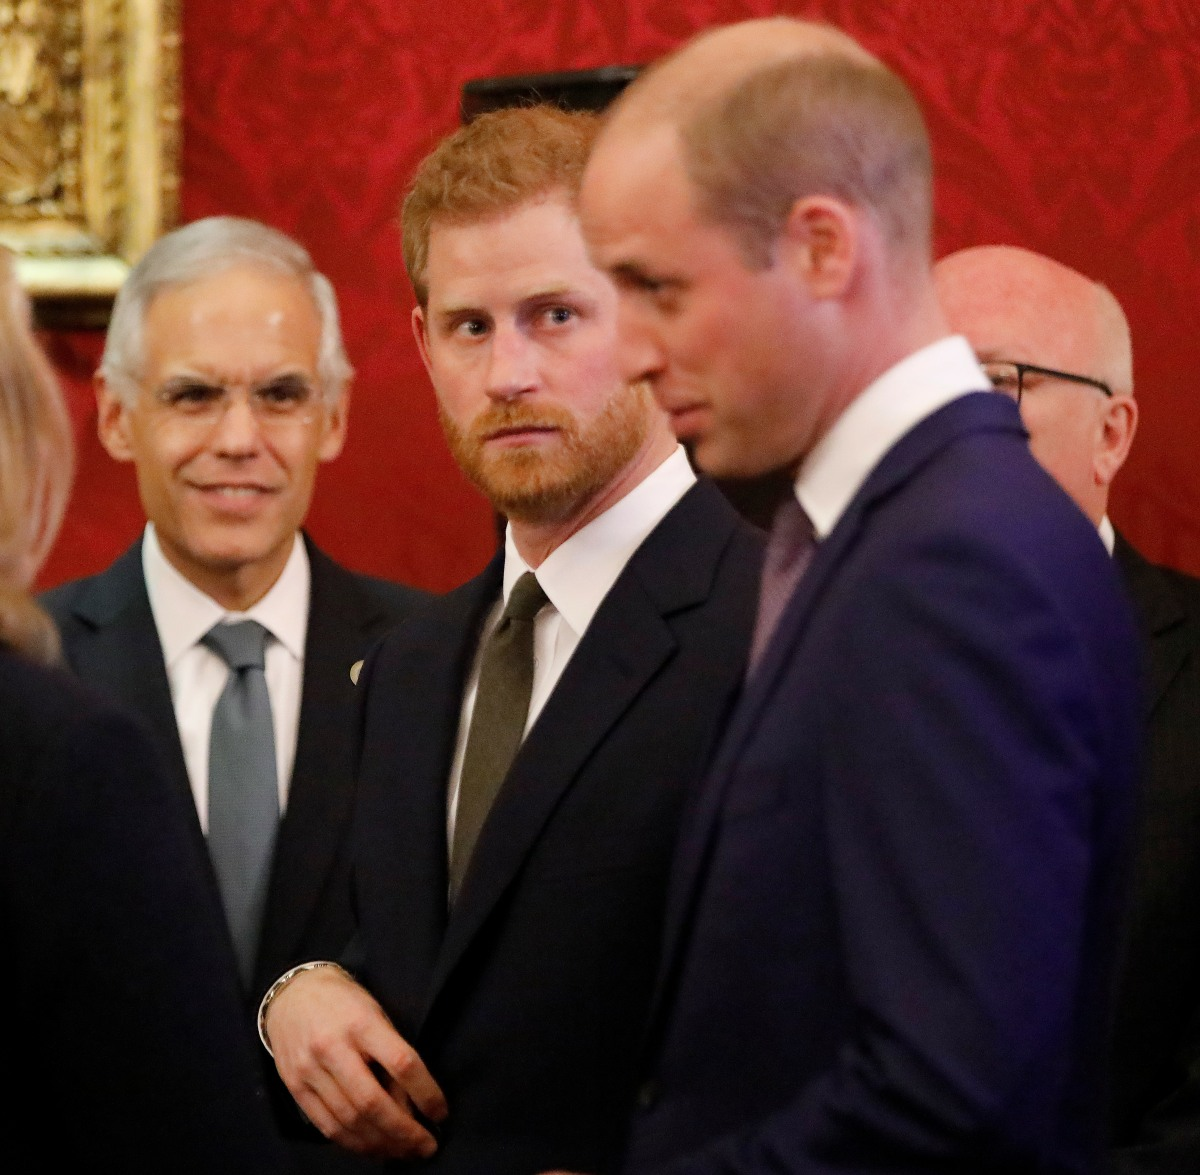 Britain's Prince William, Duke of Cambridge (R) and Britain's Prince Harry, Duke of Sussex (2R), host a reception to officially open the 2018 Illegal Wildlife Trade Conference at St James' Palace in London on October 10, 2018. - The 2018 Illegal Wildlife Trade Conference is the fourth such international conference bringing together heads of state, ministers and officials from nearly 80 countries, alongside NGOs, academics and businesses, to build on previous efforts to tackle this lucrative criminal trade. The conference is being hosted by the UK Government from 11th – 12th October 2018.